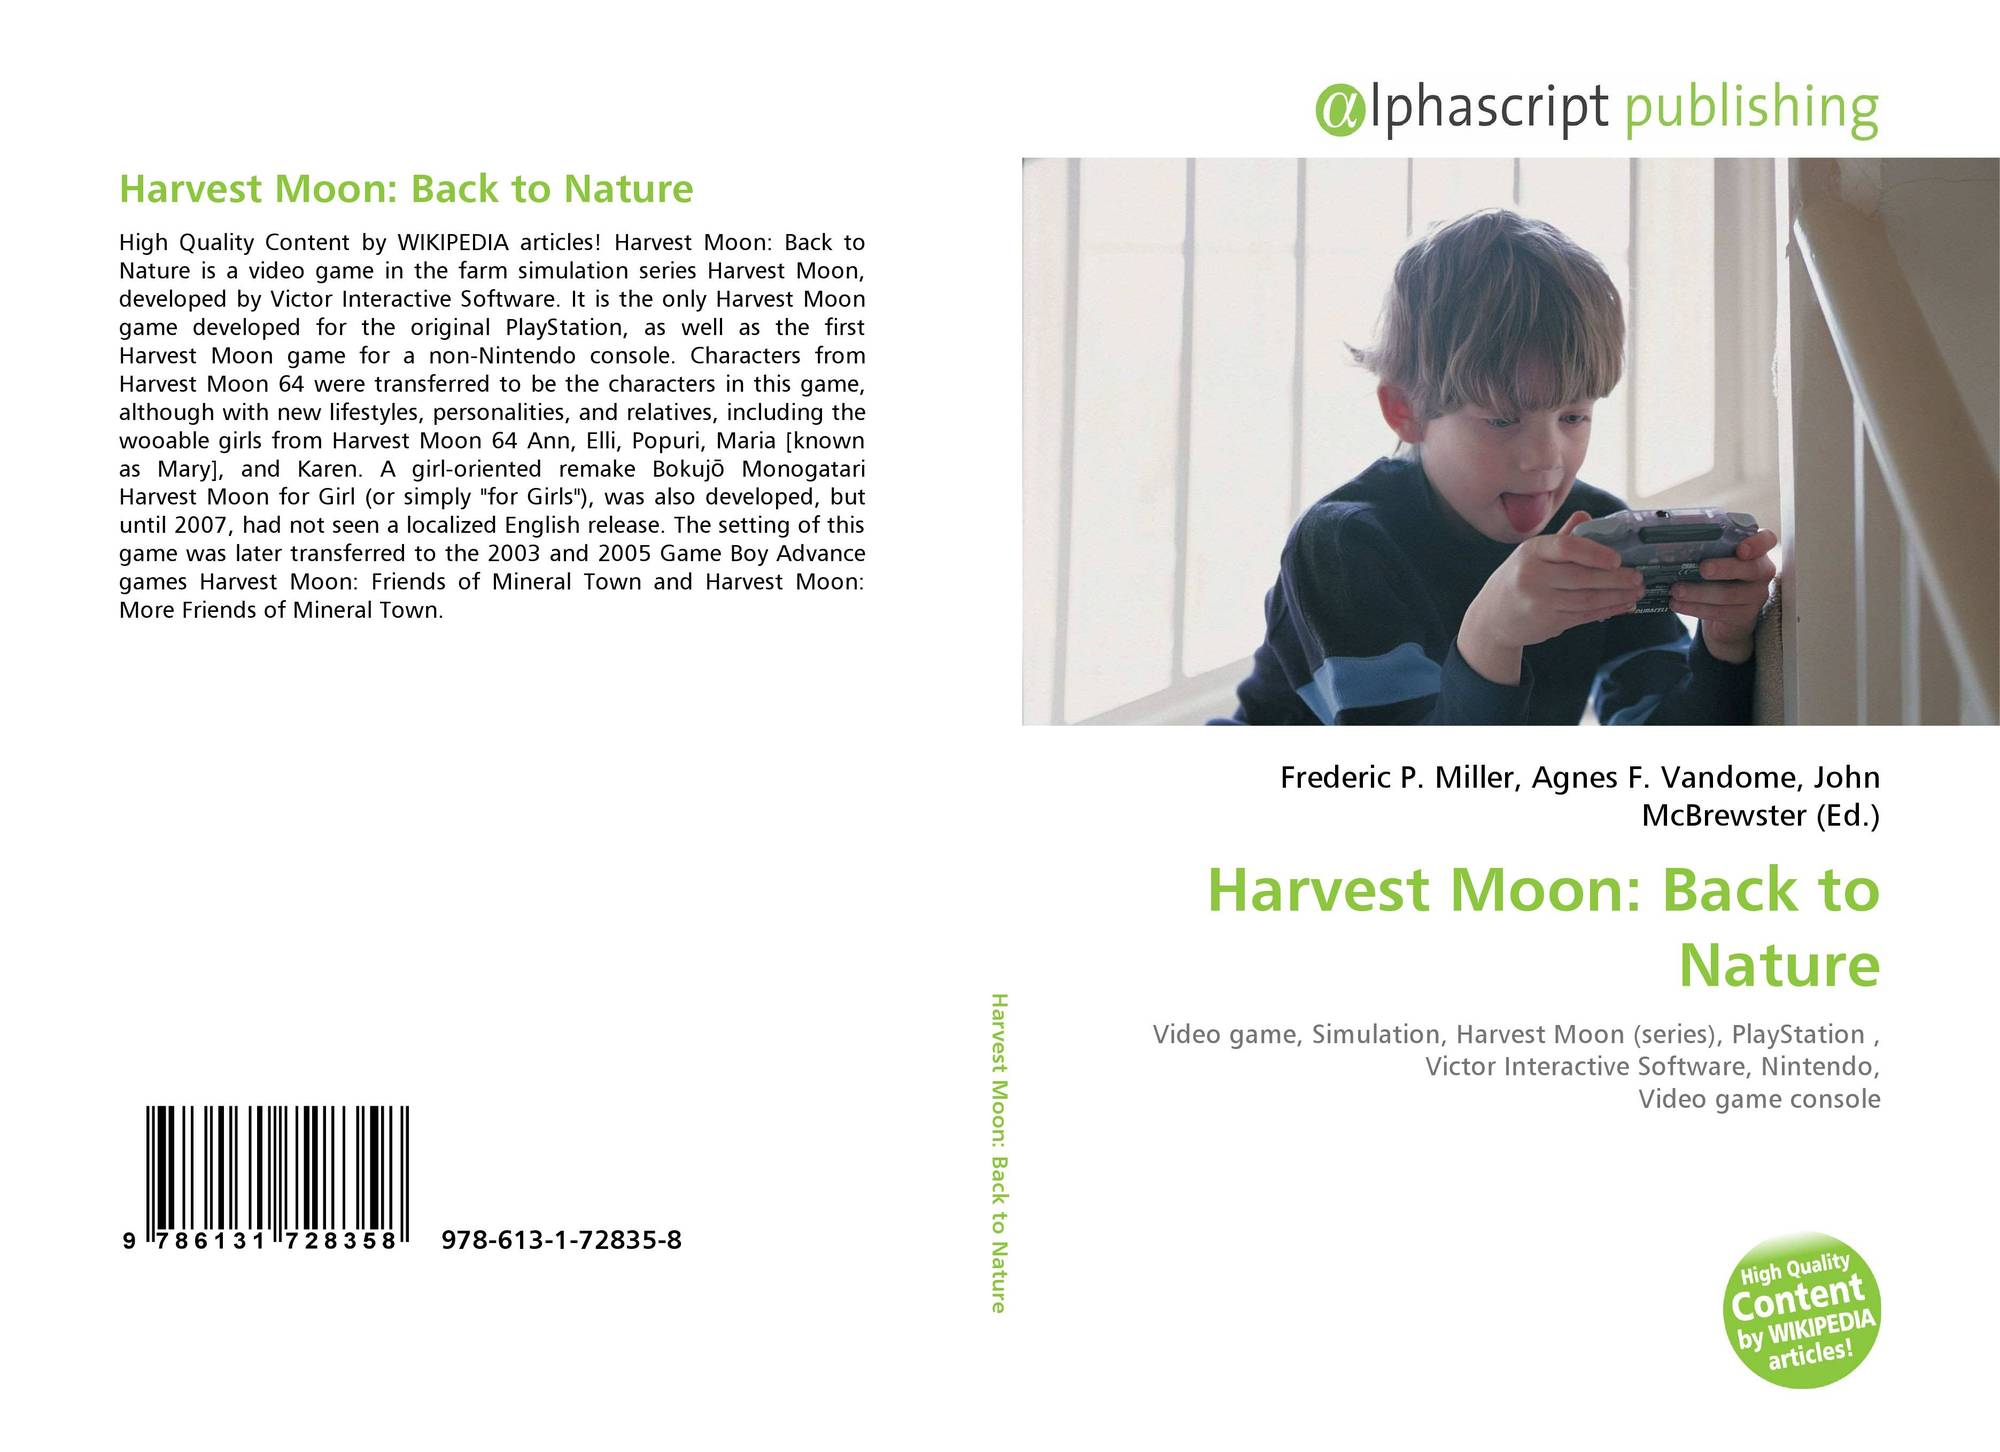 Harvest Moon: Back to Nature, 978-613-1-72835-8, 6131728356